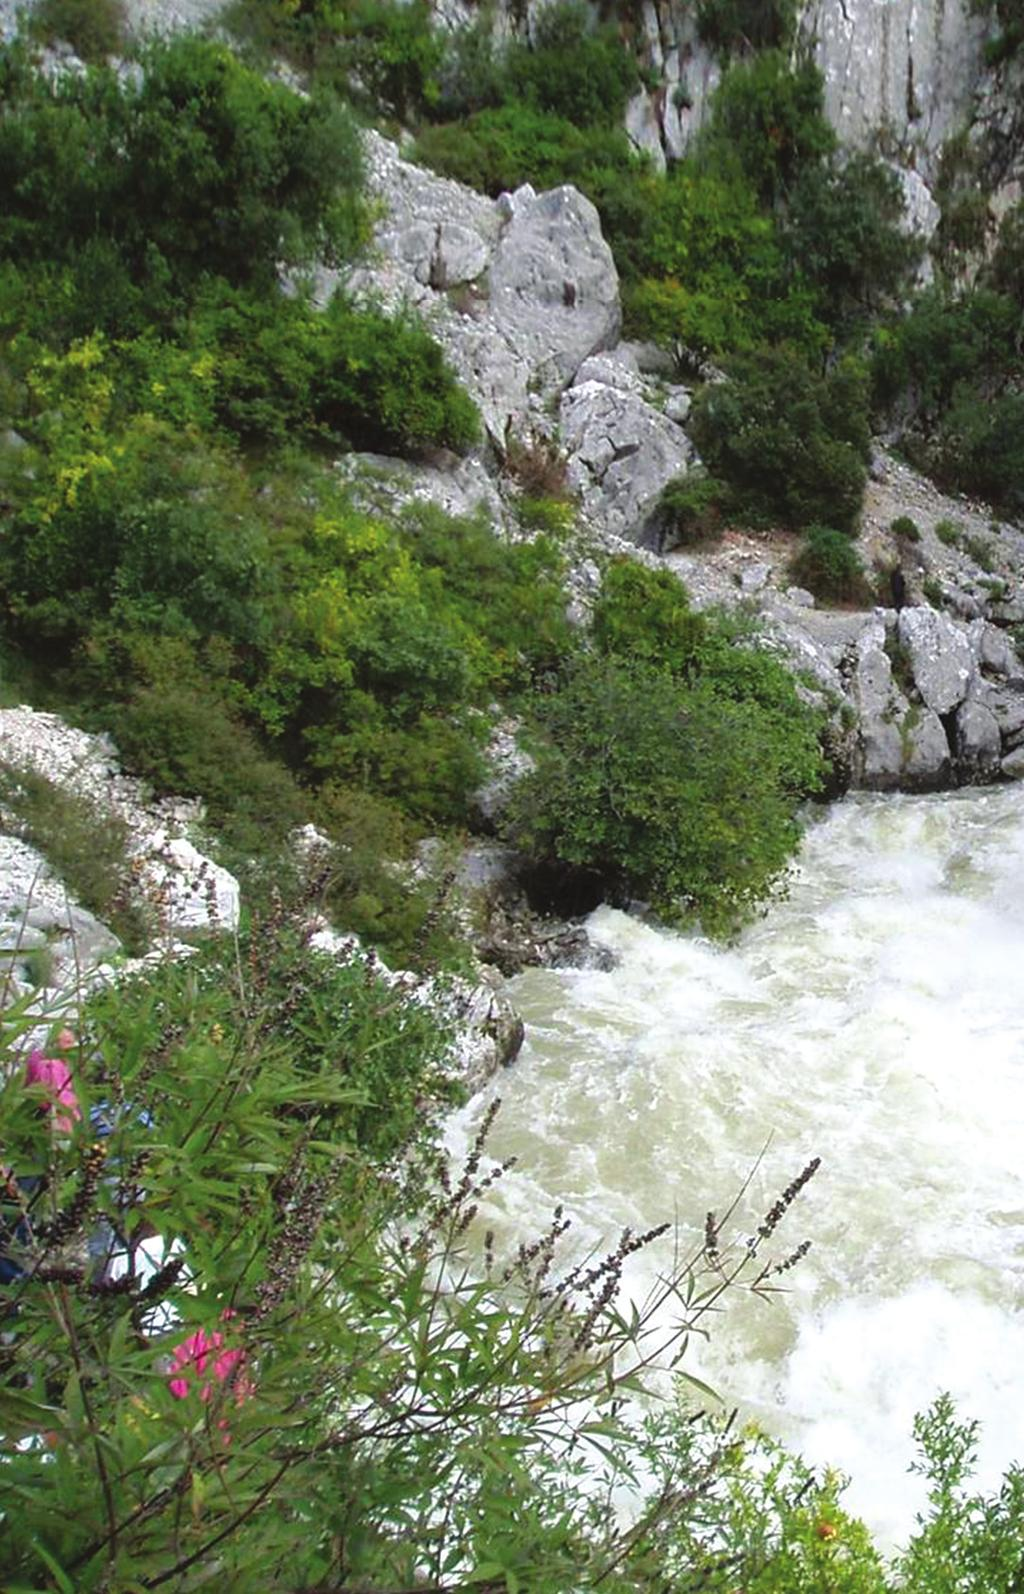 the results Scientific knowledge for the Dinaric Karst Aquifer System was enhanced and harmonized.